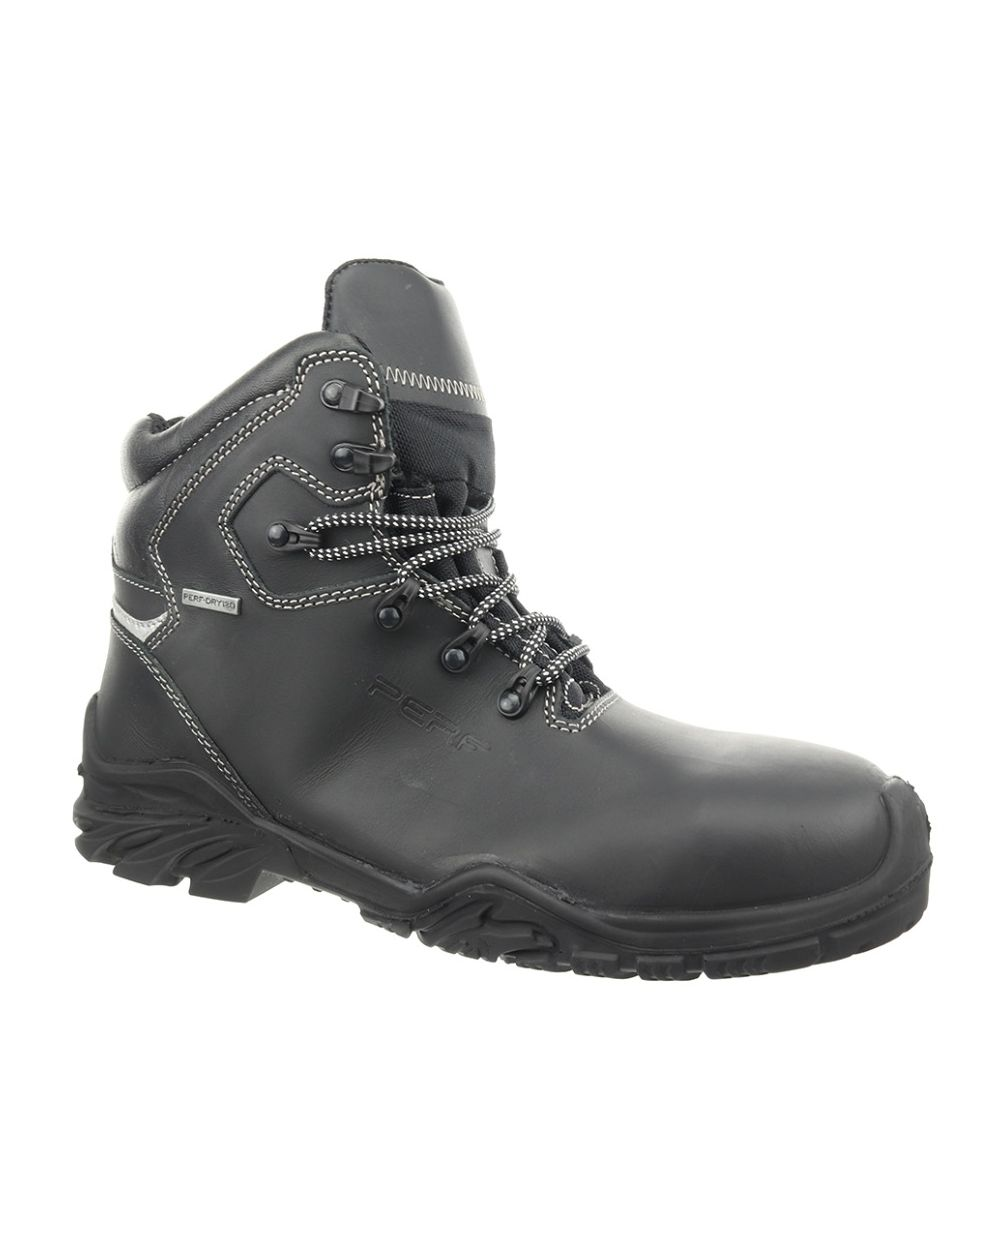 Zermatt S3 Waterproof Boot